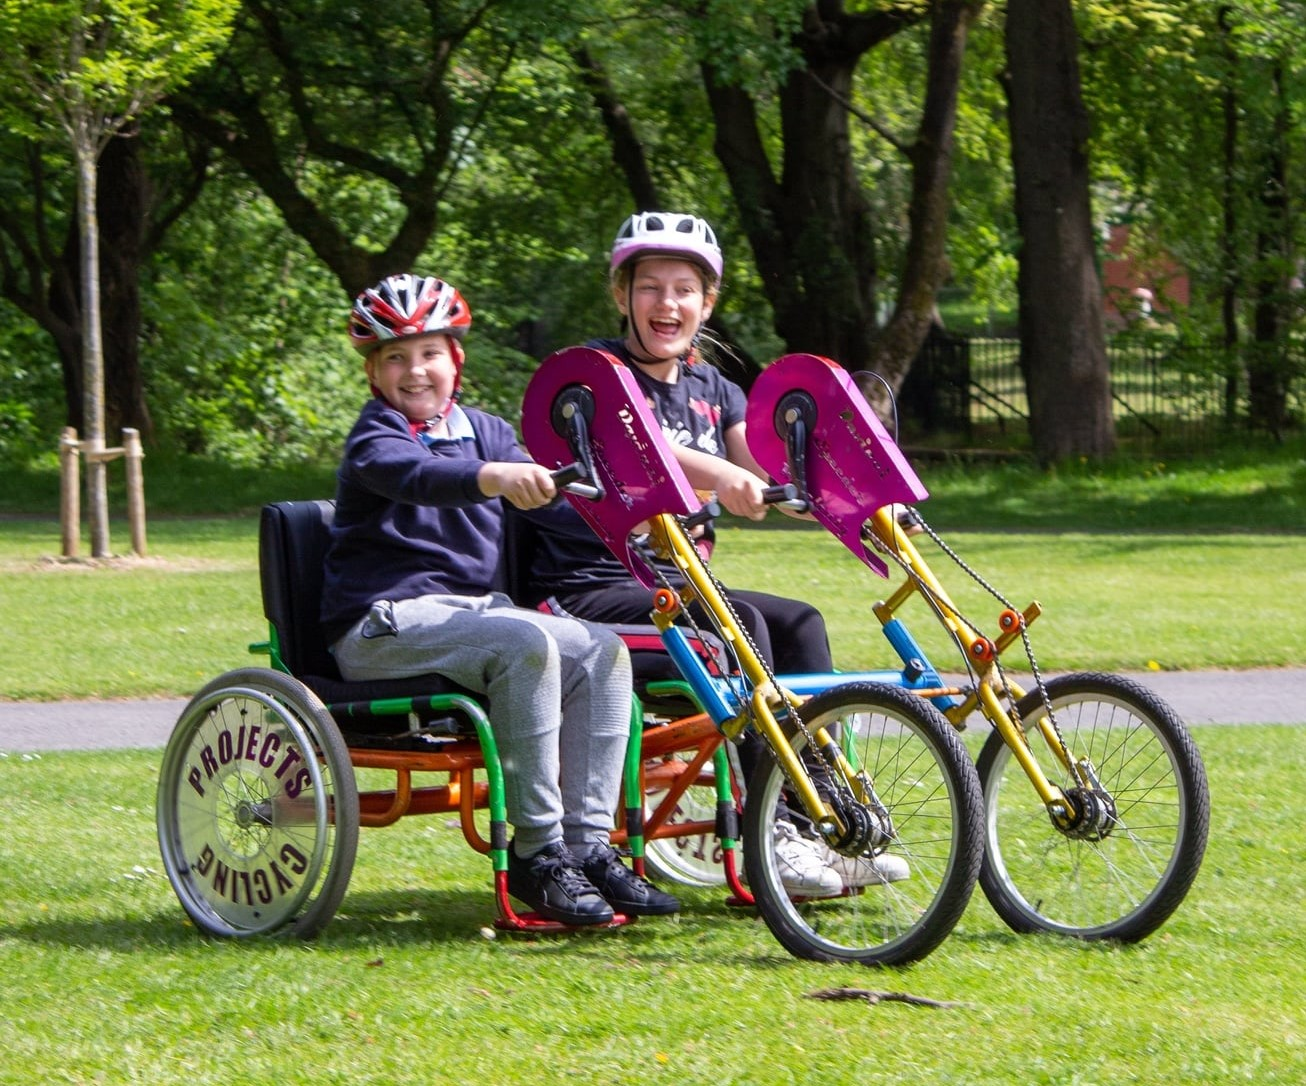 Two children on an adpated bike